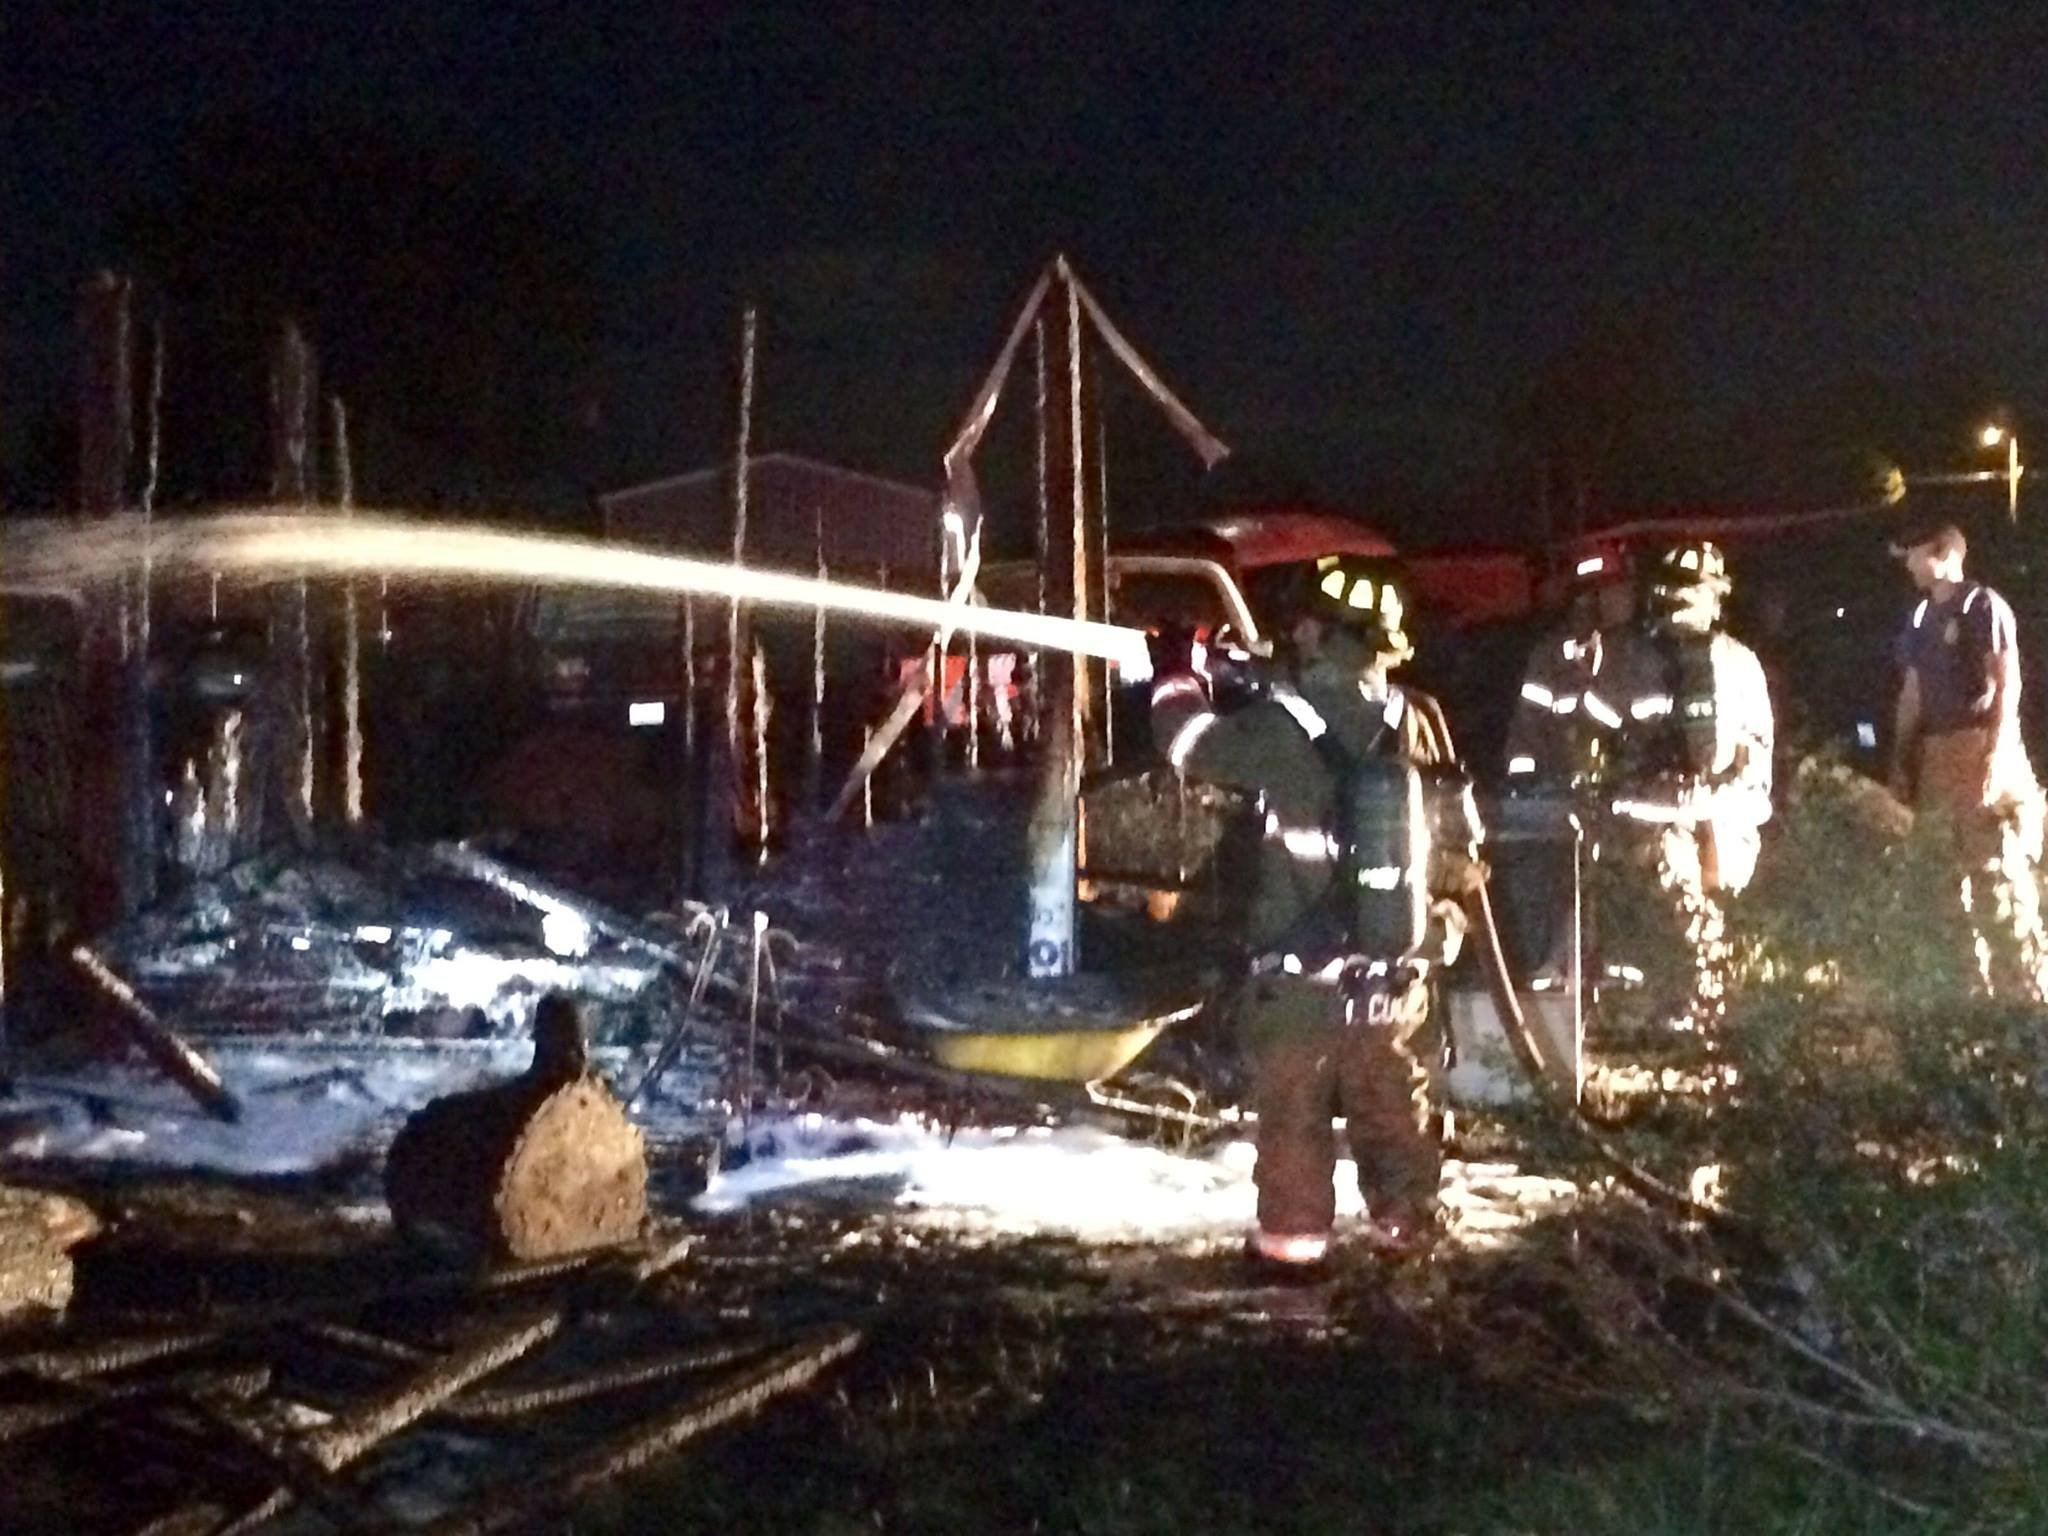 Firefighter putting out shed fire in Kennewick, Thursday night